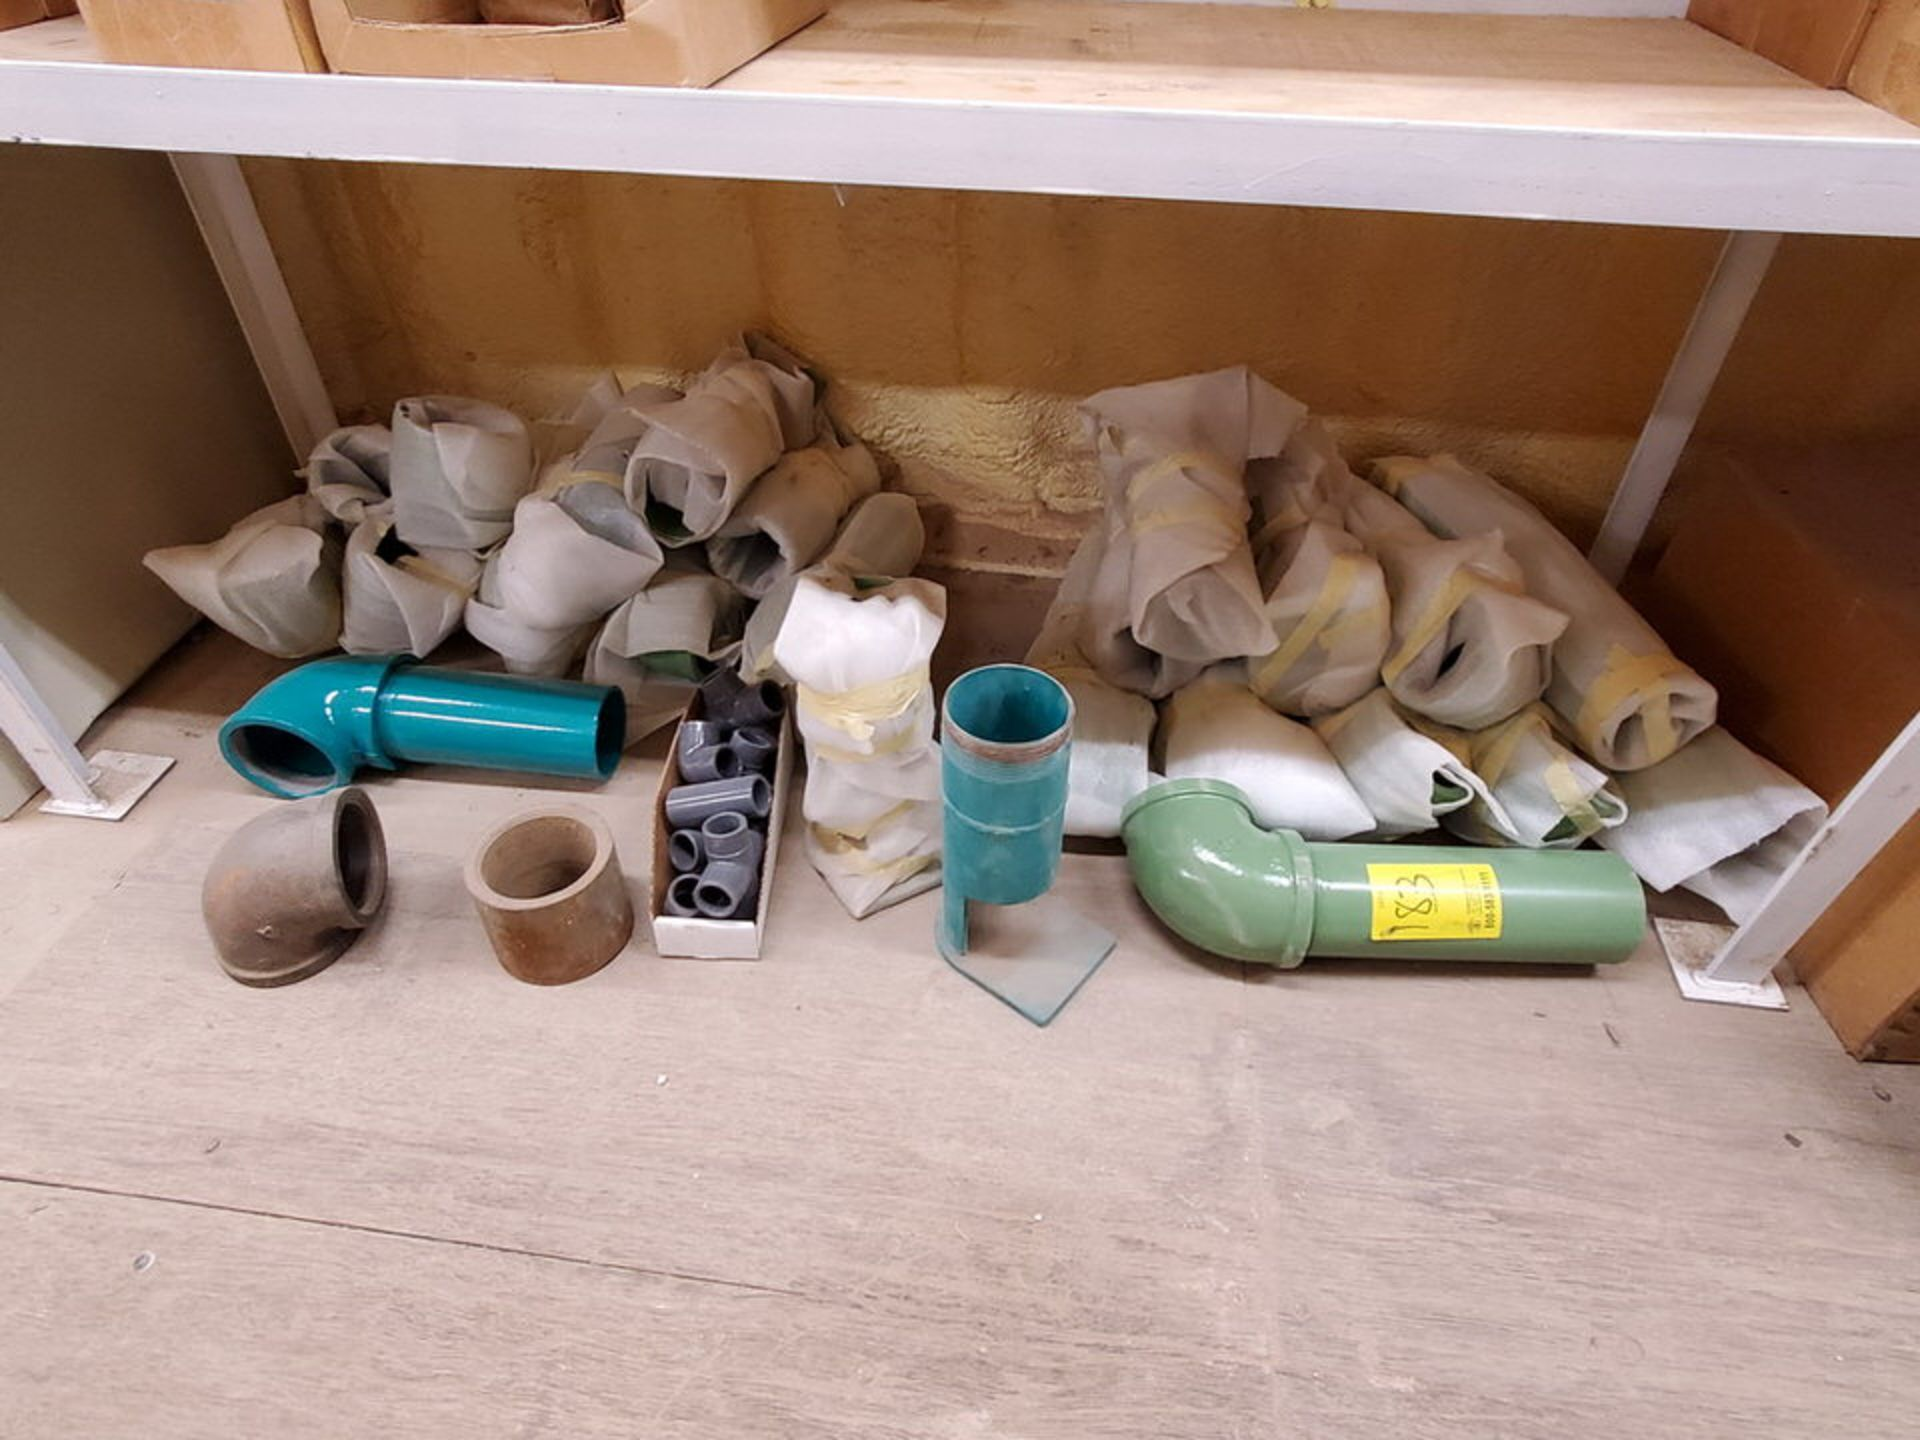 Assorted Fittings To Include But Not Limited To: Ells, 90's, Couplings, Nipples, U-Bolts, Washers,